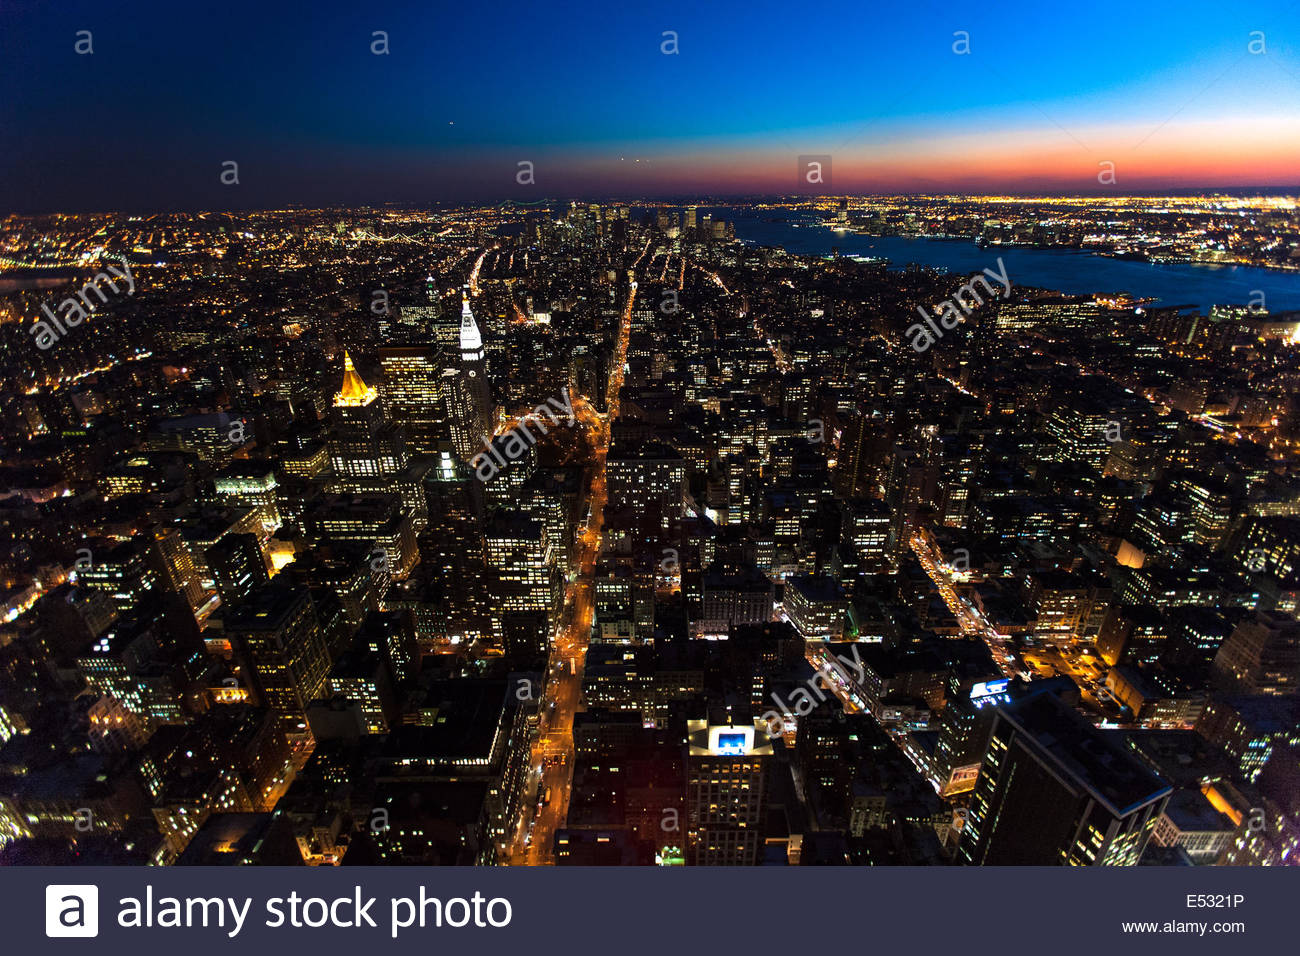 New York City at dusk from above (shot from Empire State Building), New York, USA - Stock Image